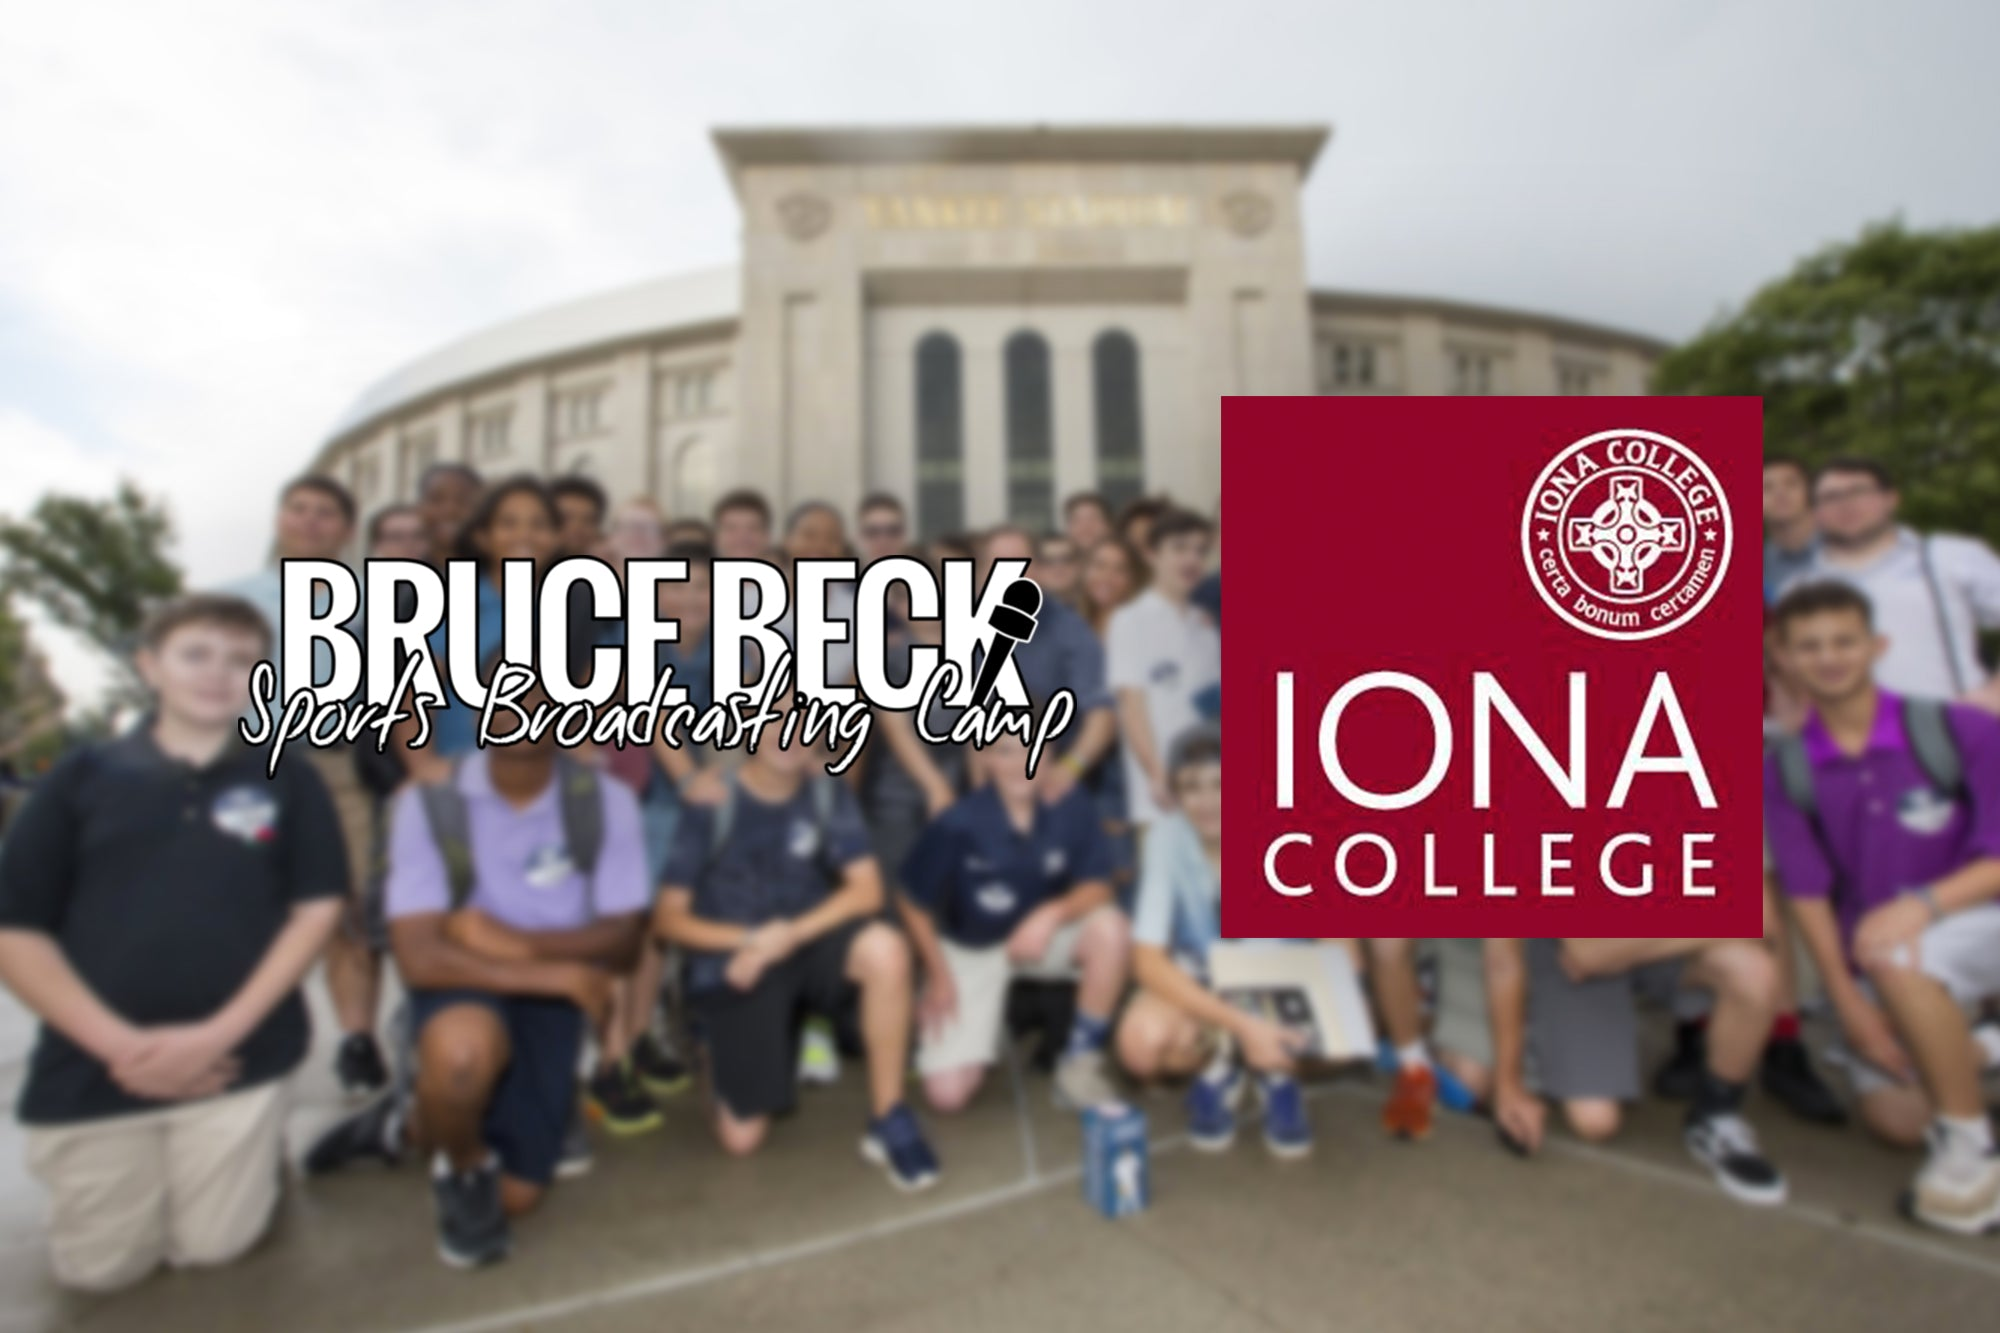 Bruce Beck Sports Broadcasting Camp Partners with Iona College for 2019 Camp